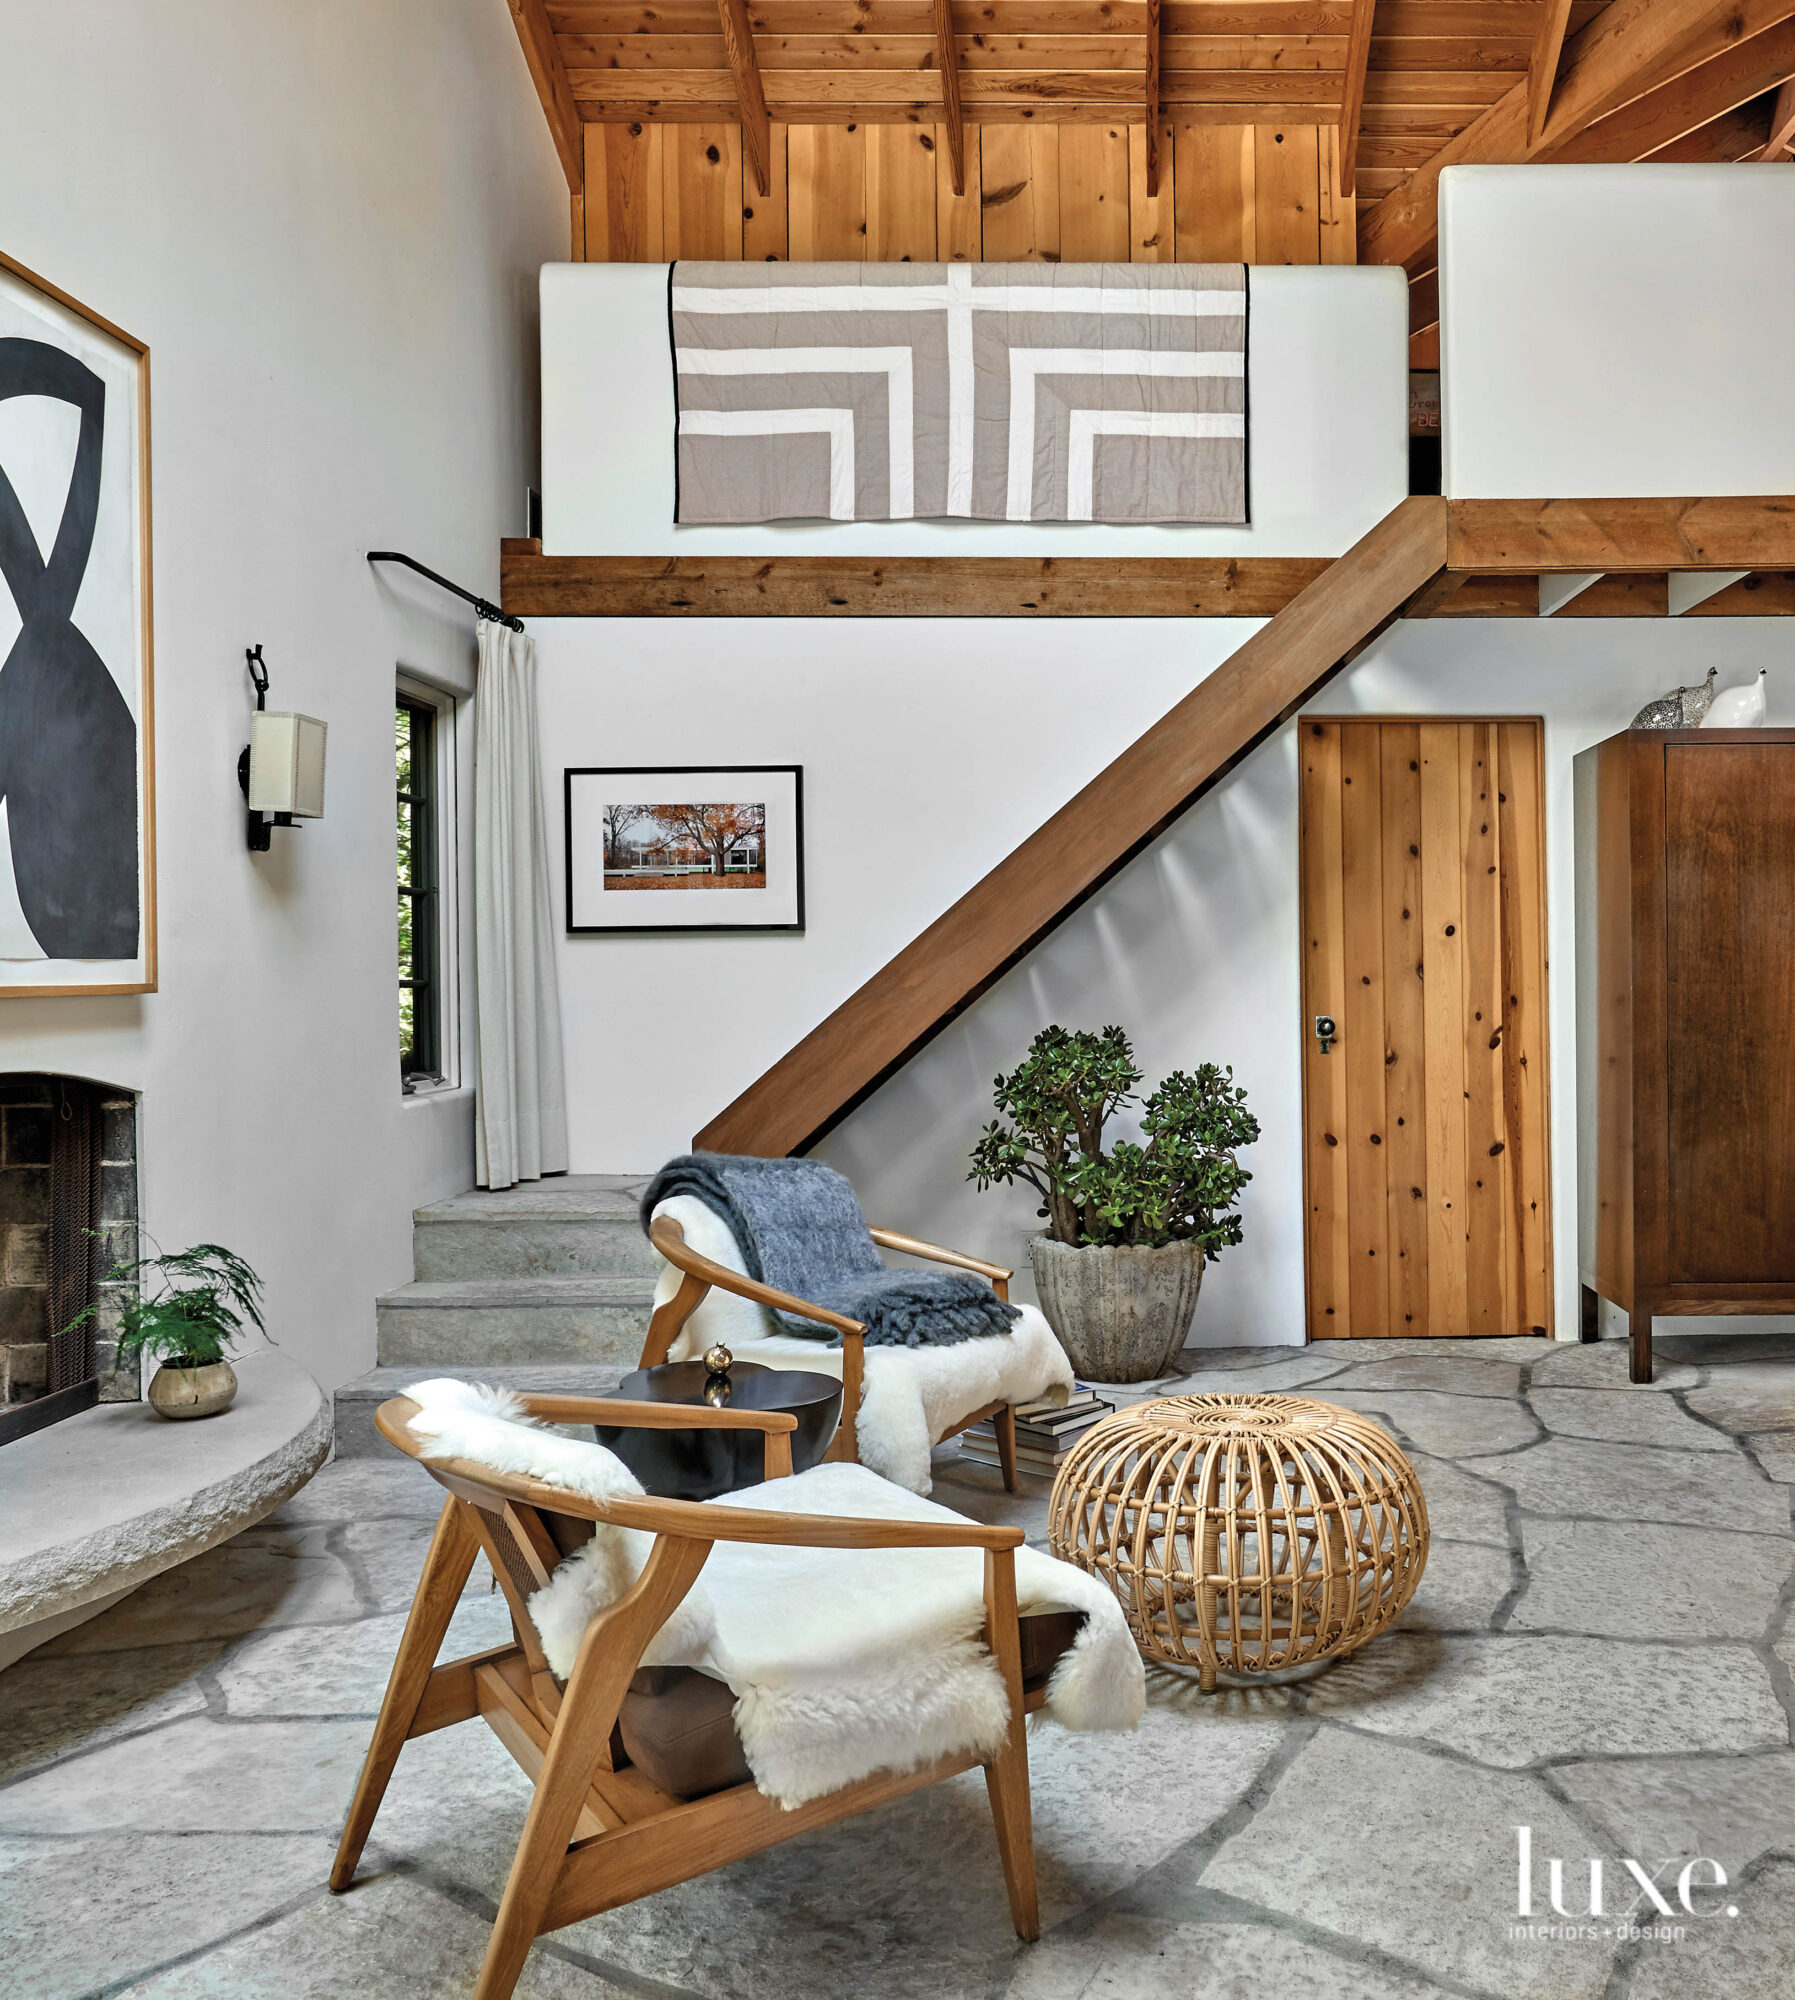 White walls and wood and stonework features dominate this cozy seating area.